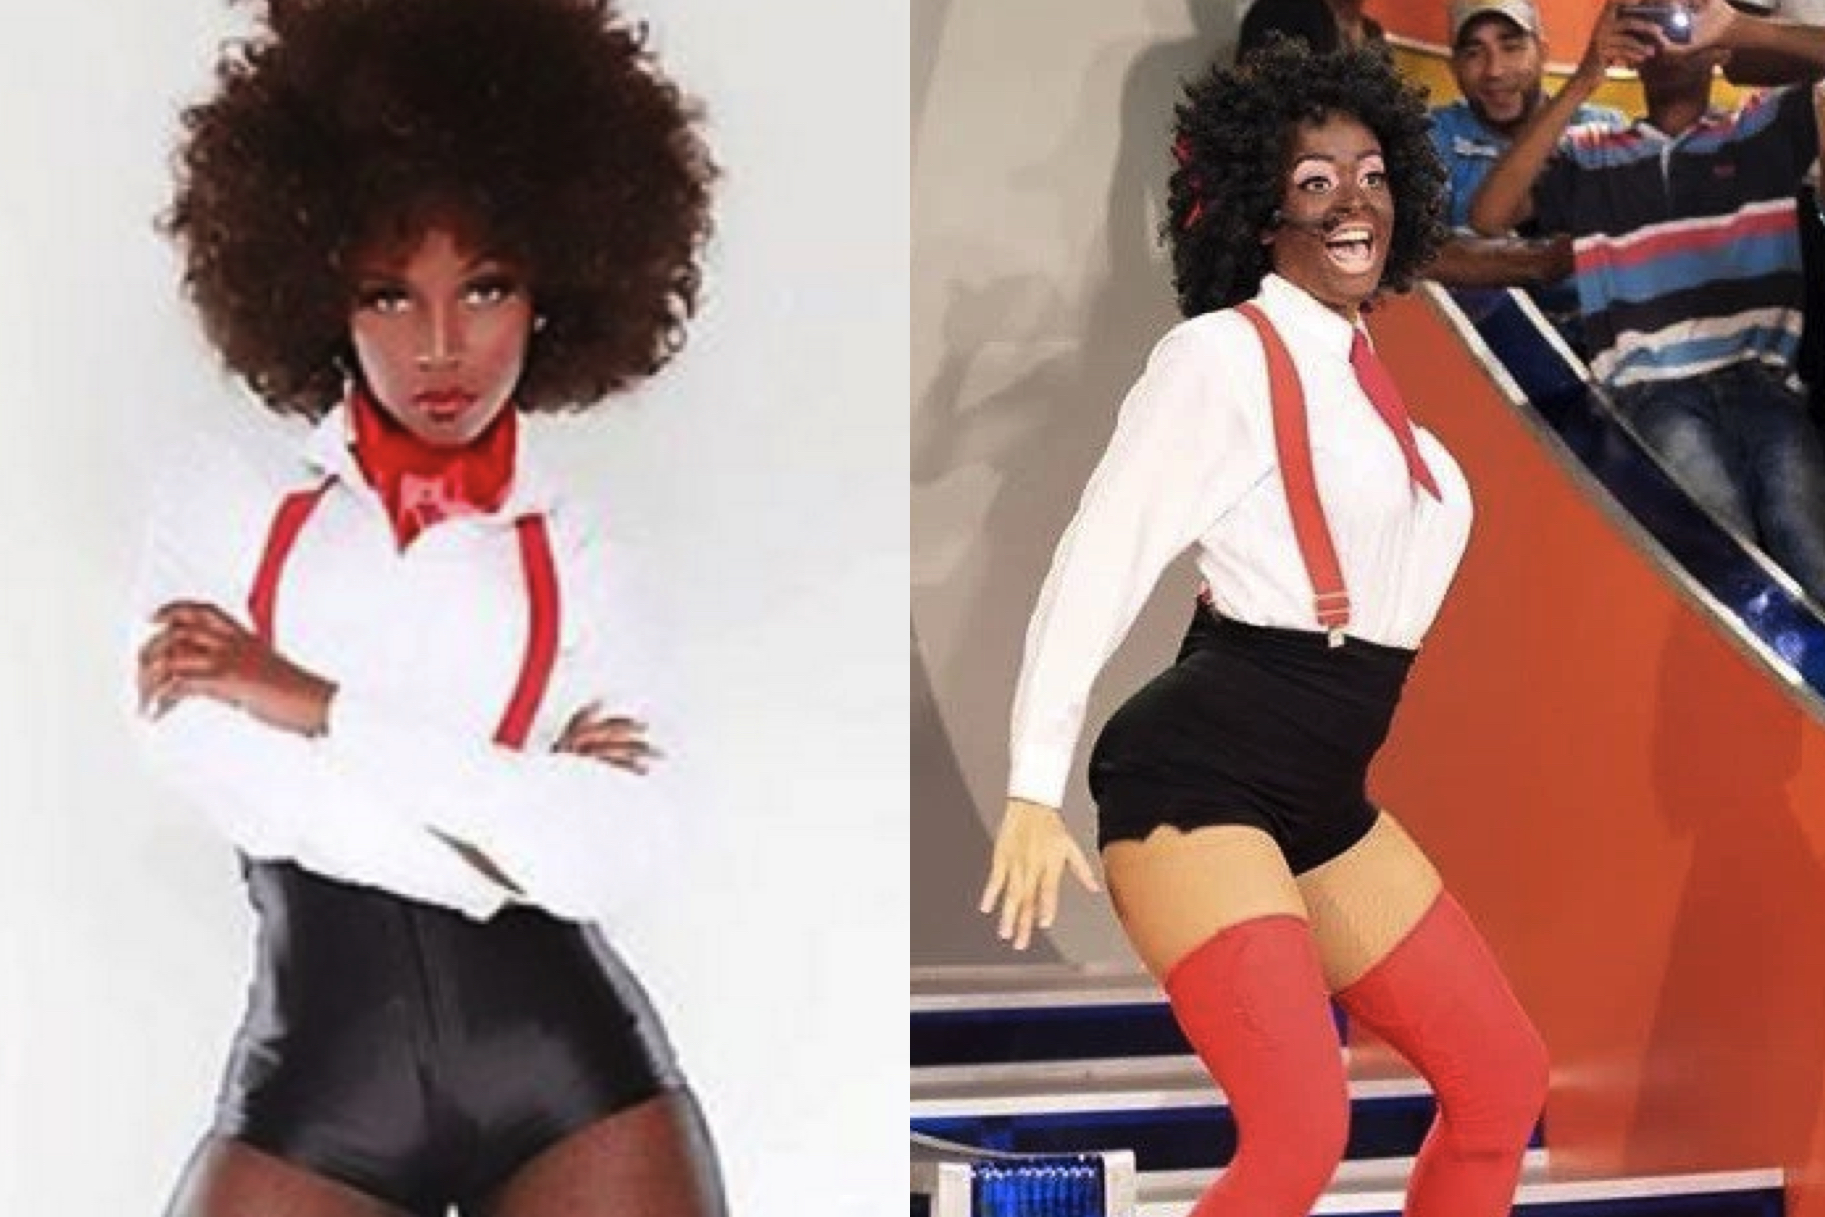 The Internet Lost It Over This Blackface Impersonation In The